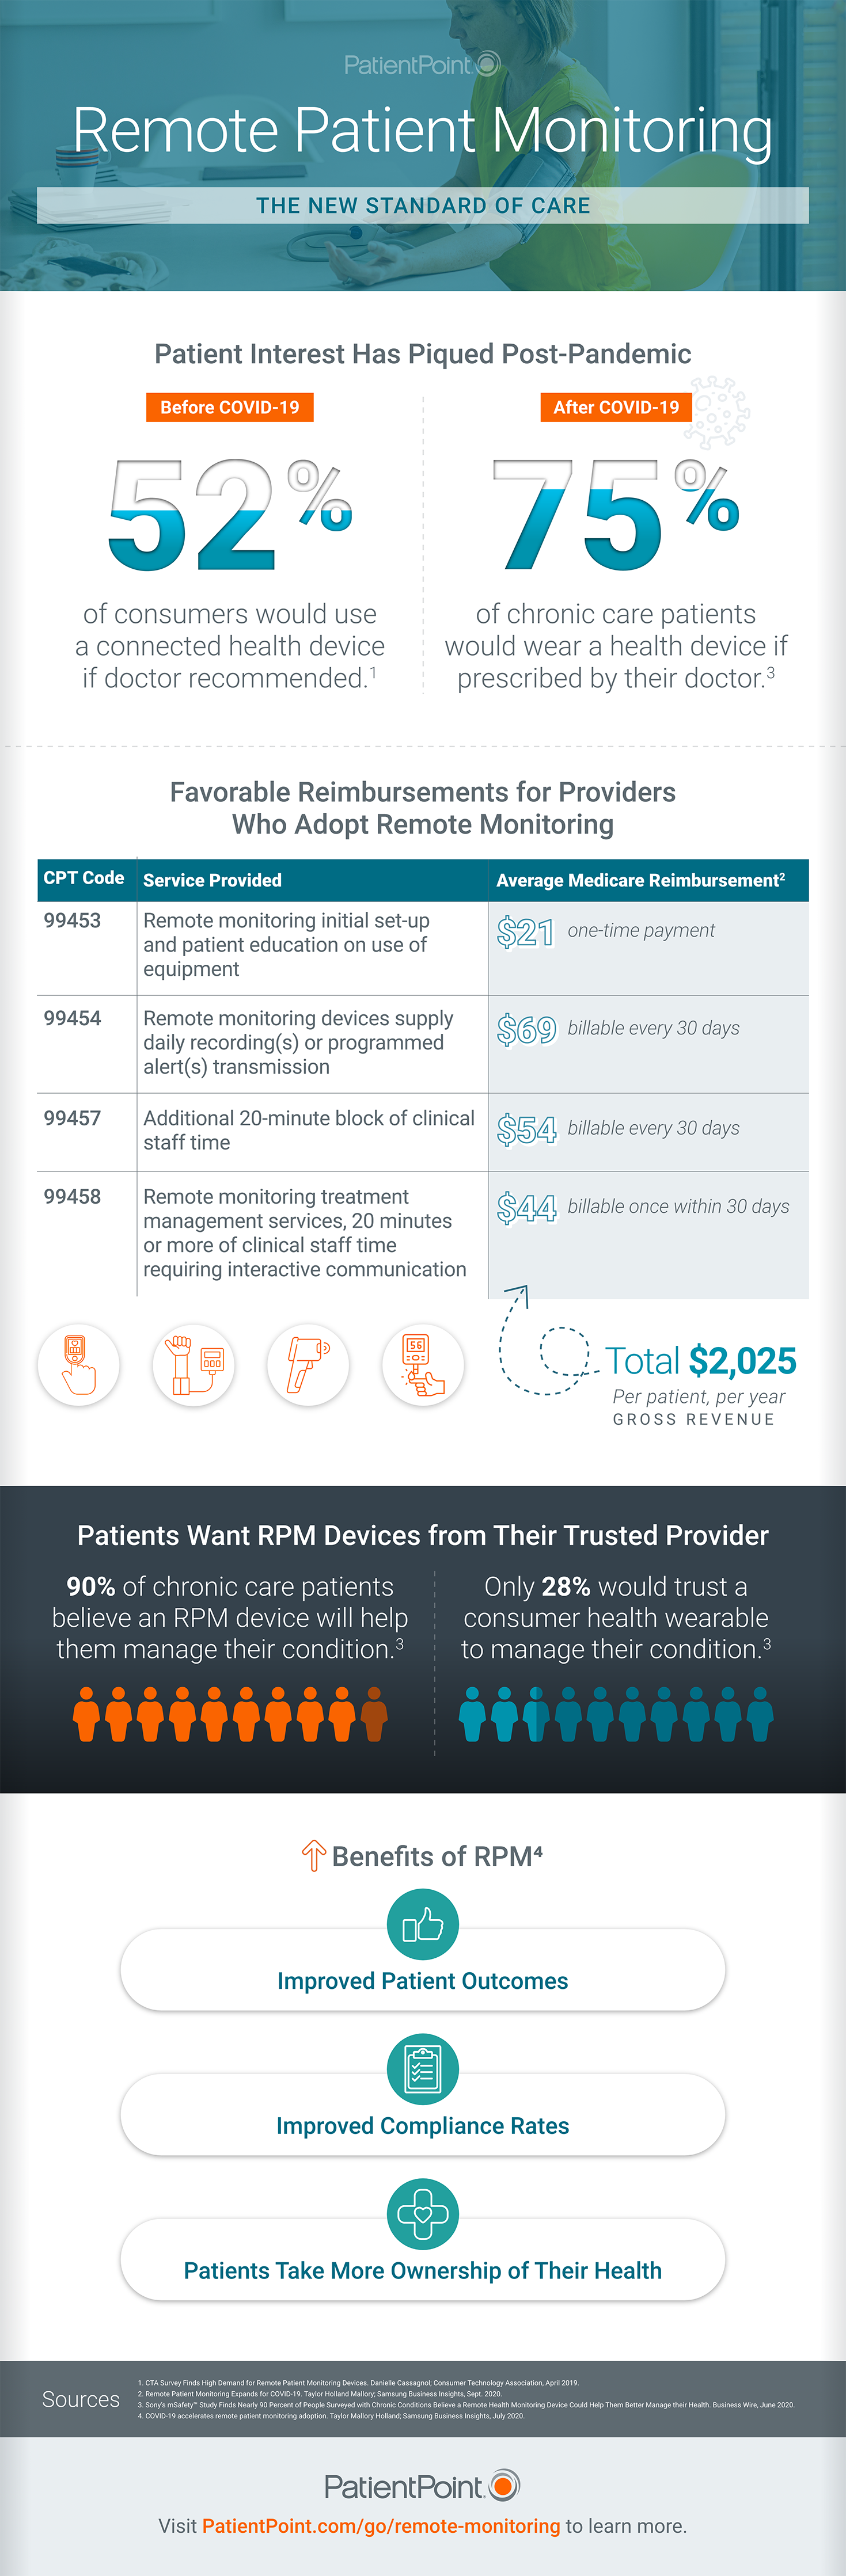 An infographic with information to help healthcare practice administrators and healthcare professionals assess whether remote patient monitoring (RPM) is right for their patients.